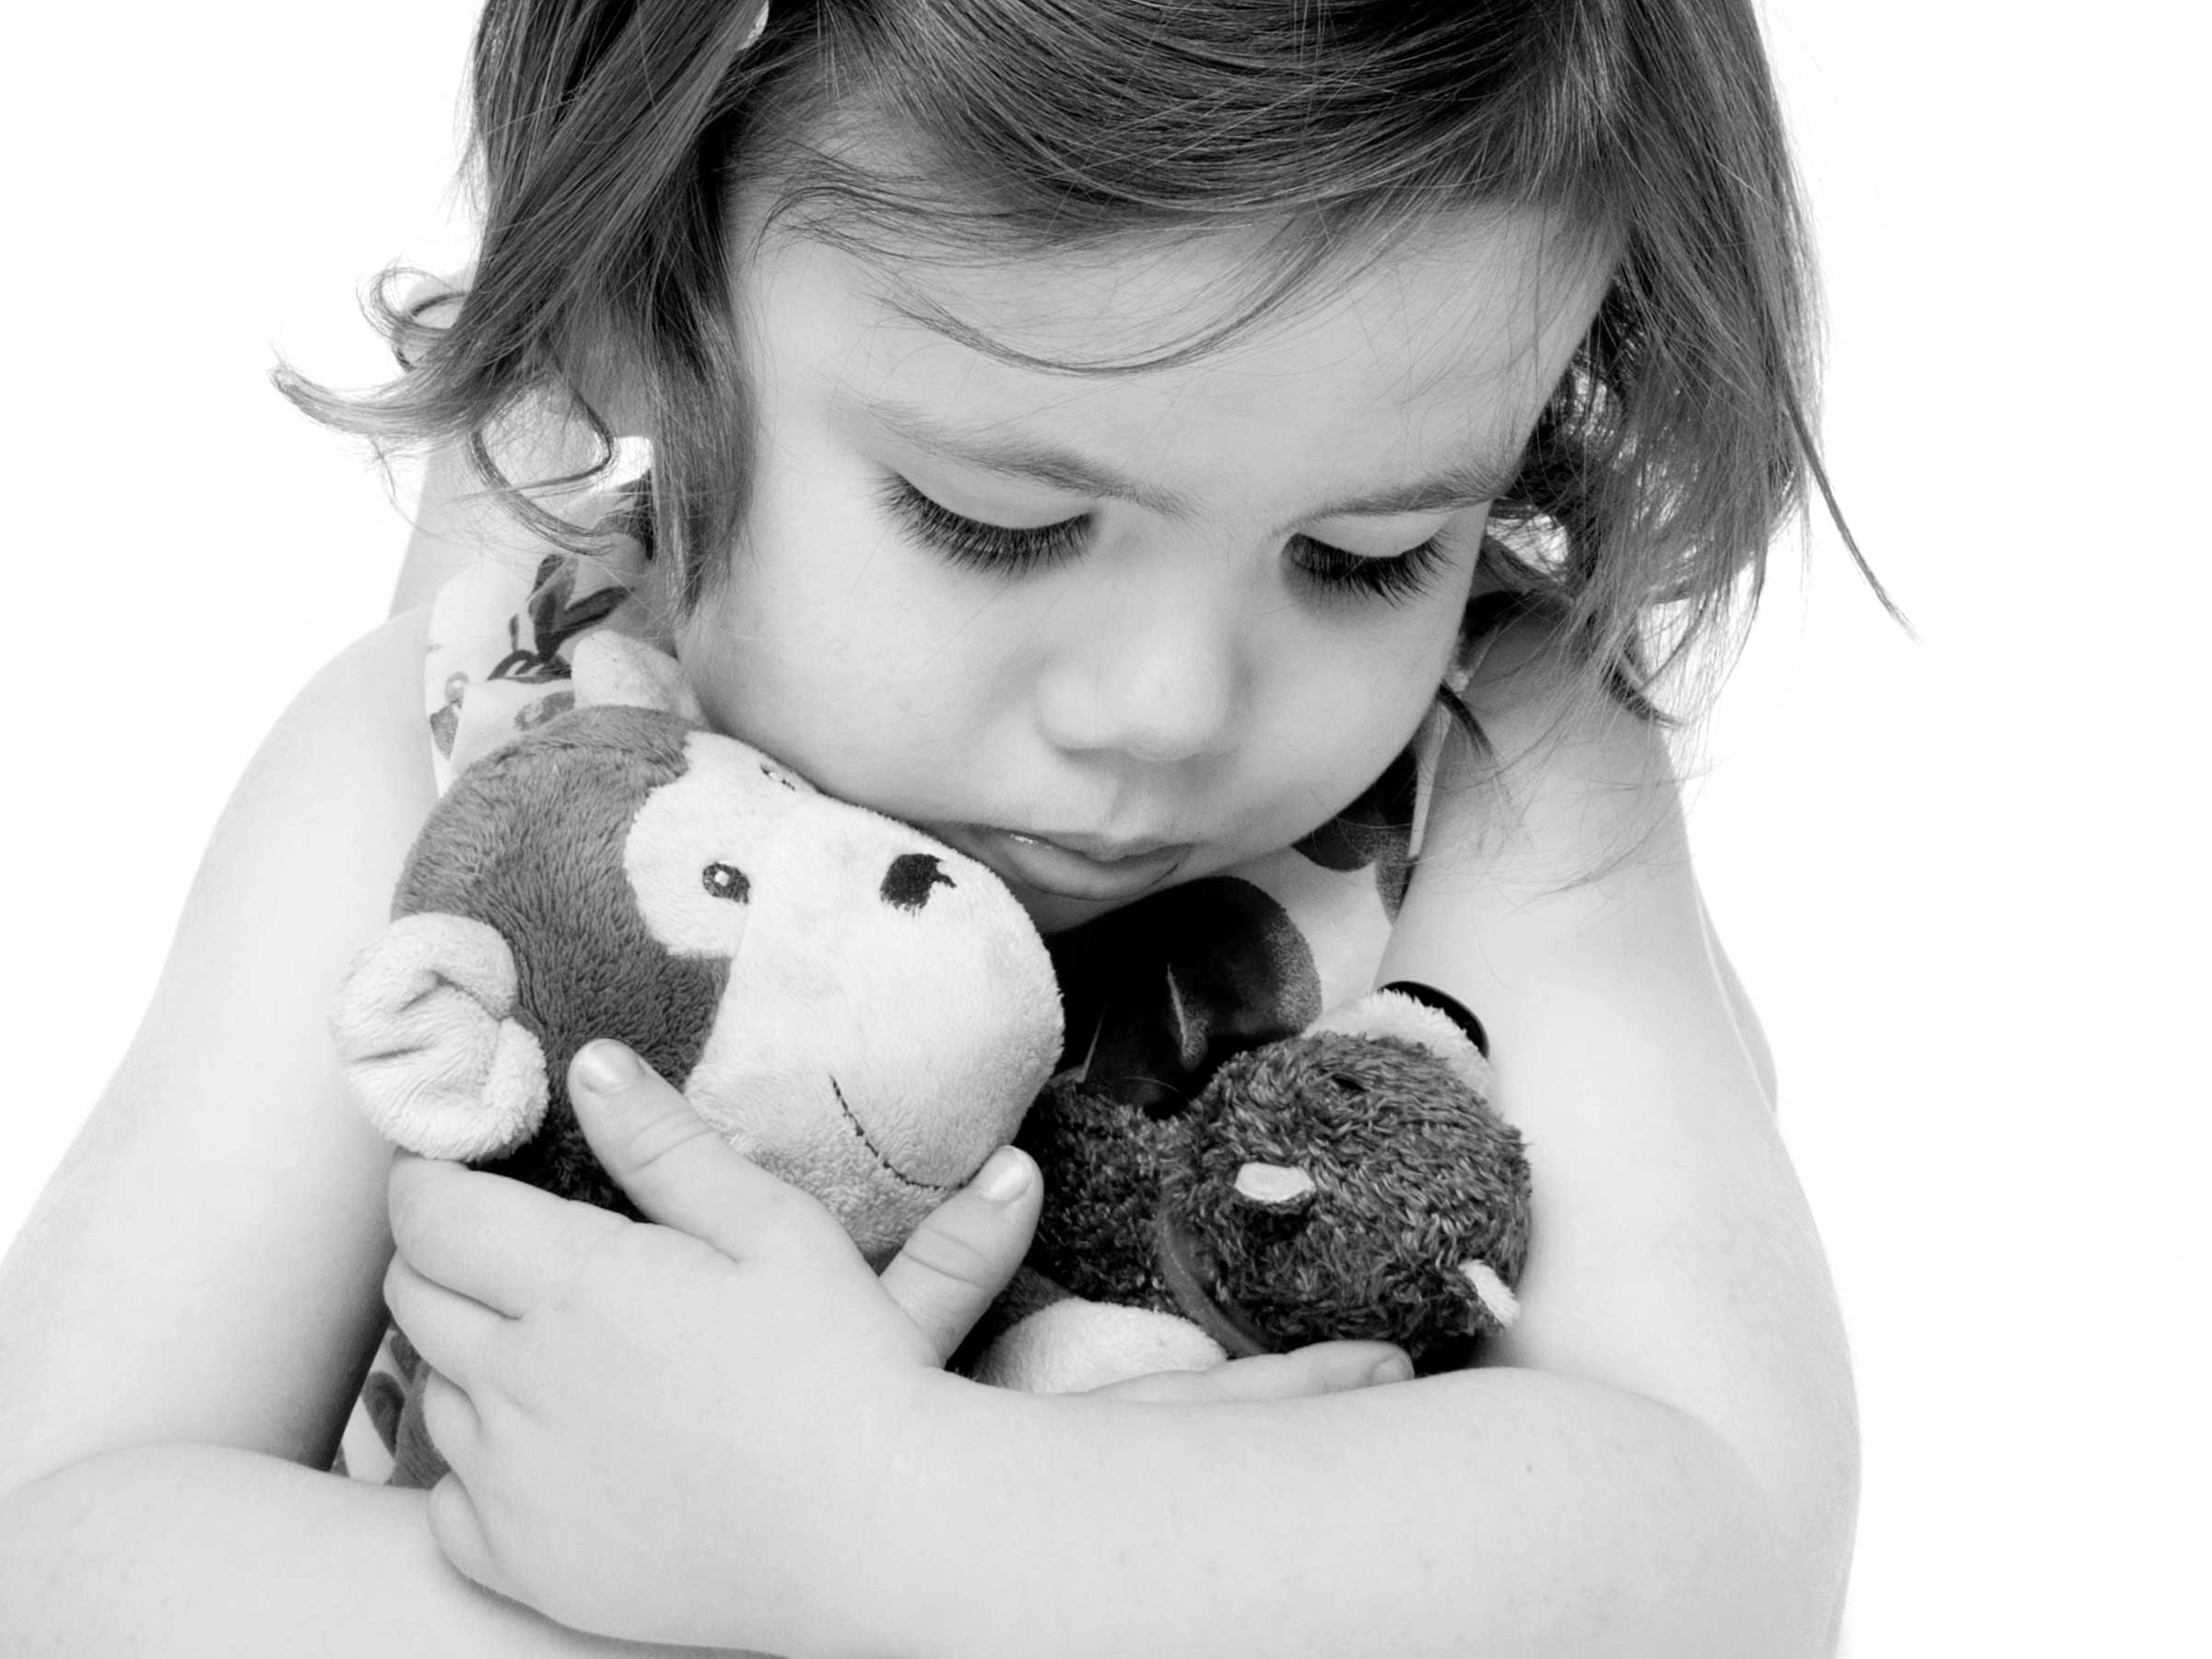 03-Home-Shoot-Toddler-Holding-Teddy-Black-and-White-Philip-Murray-Photography-Dublin